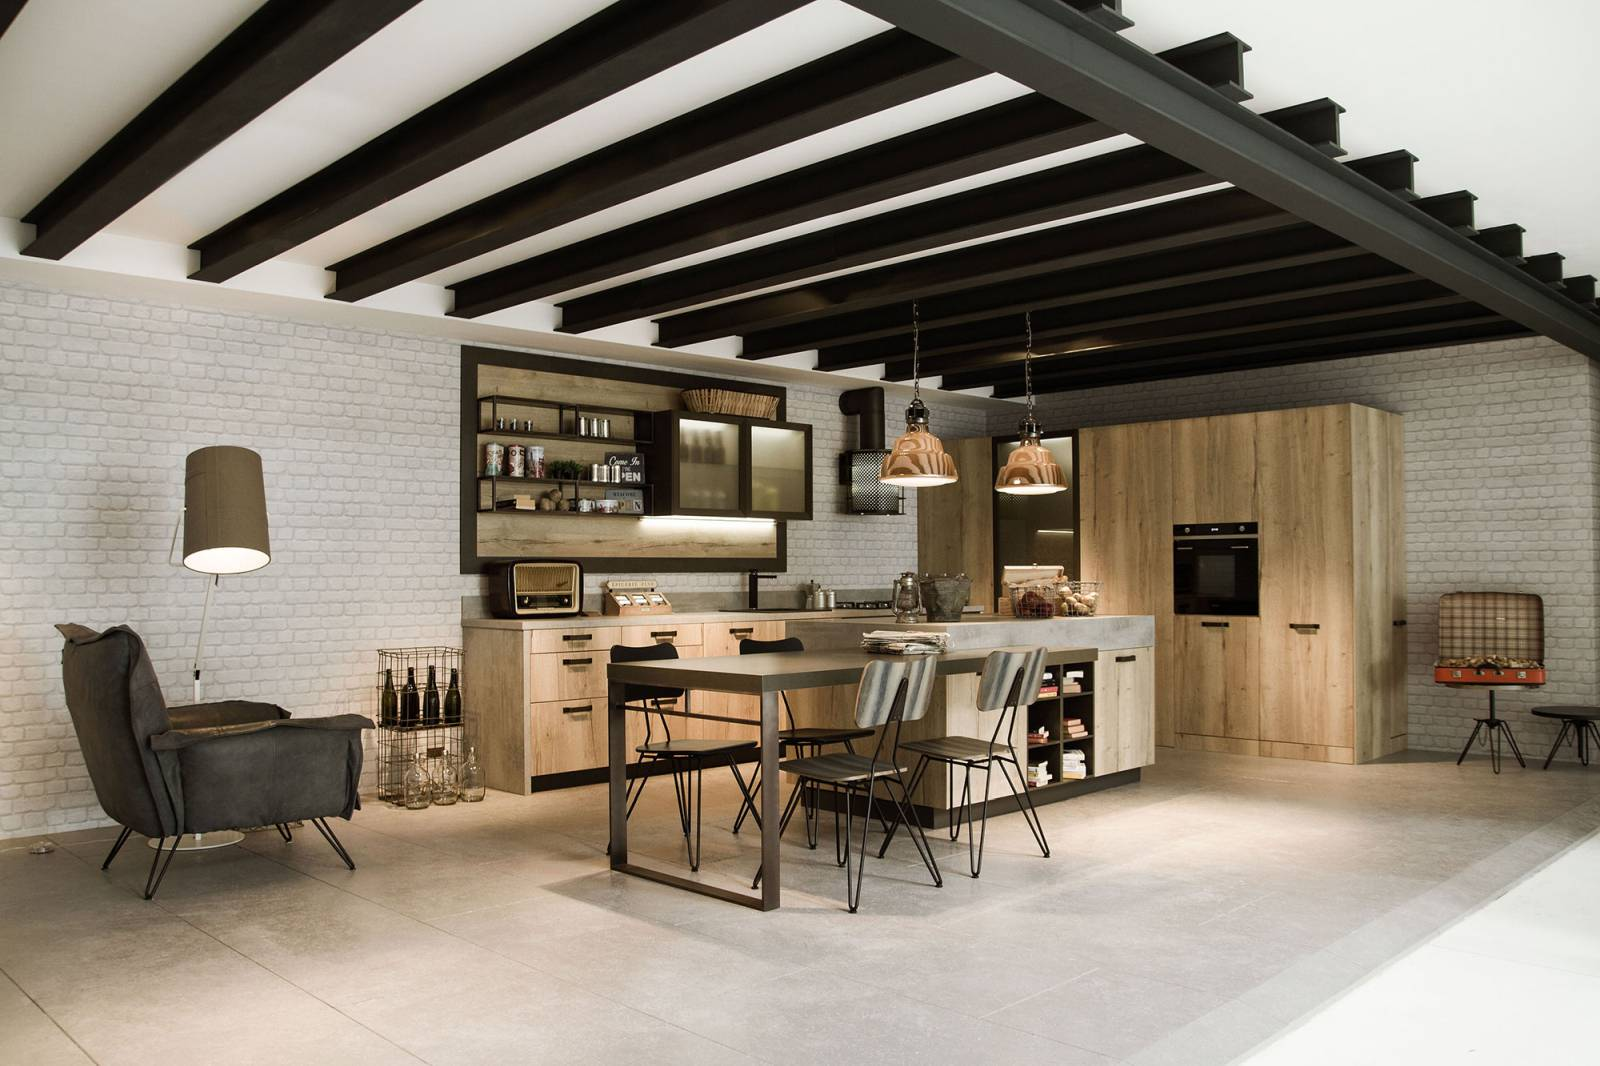 63 loft kitchen design & decor ideas: industrial, urban and modern style